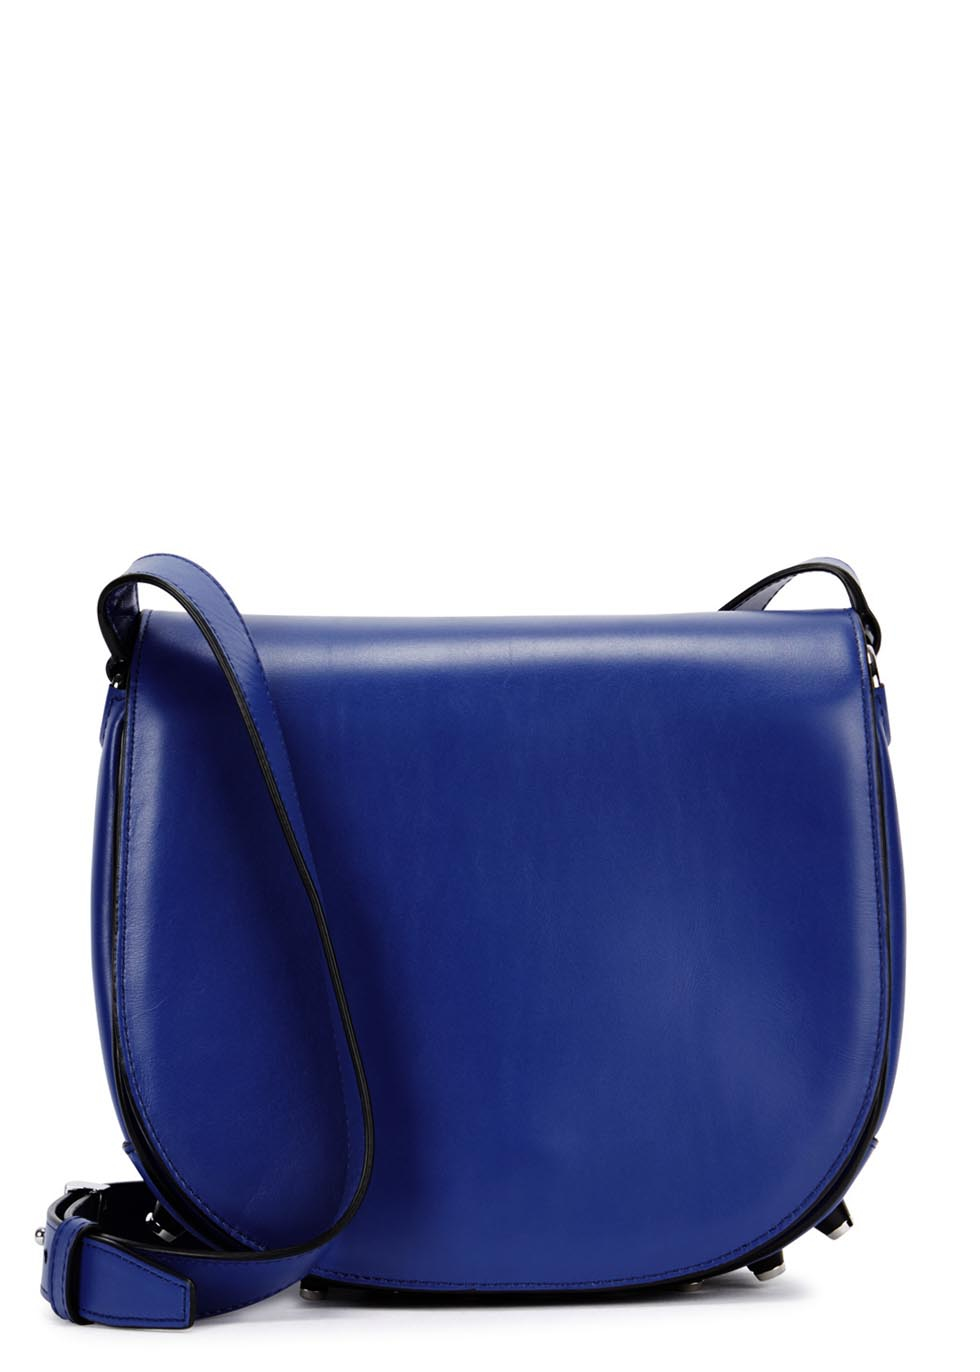 Alexander wang Alpha Lia Leather Cross-body Bag in Blue